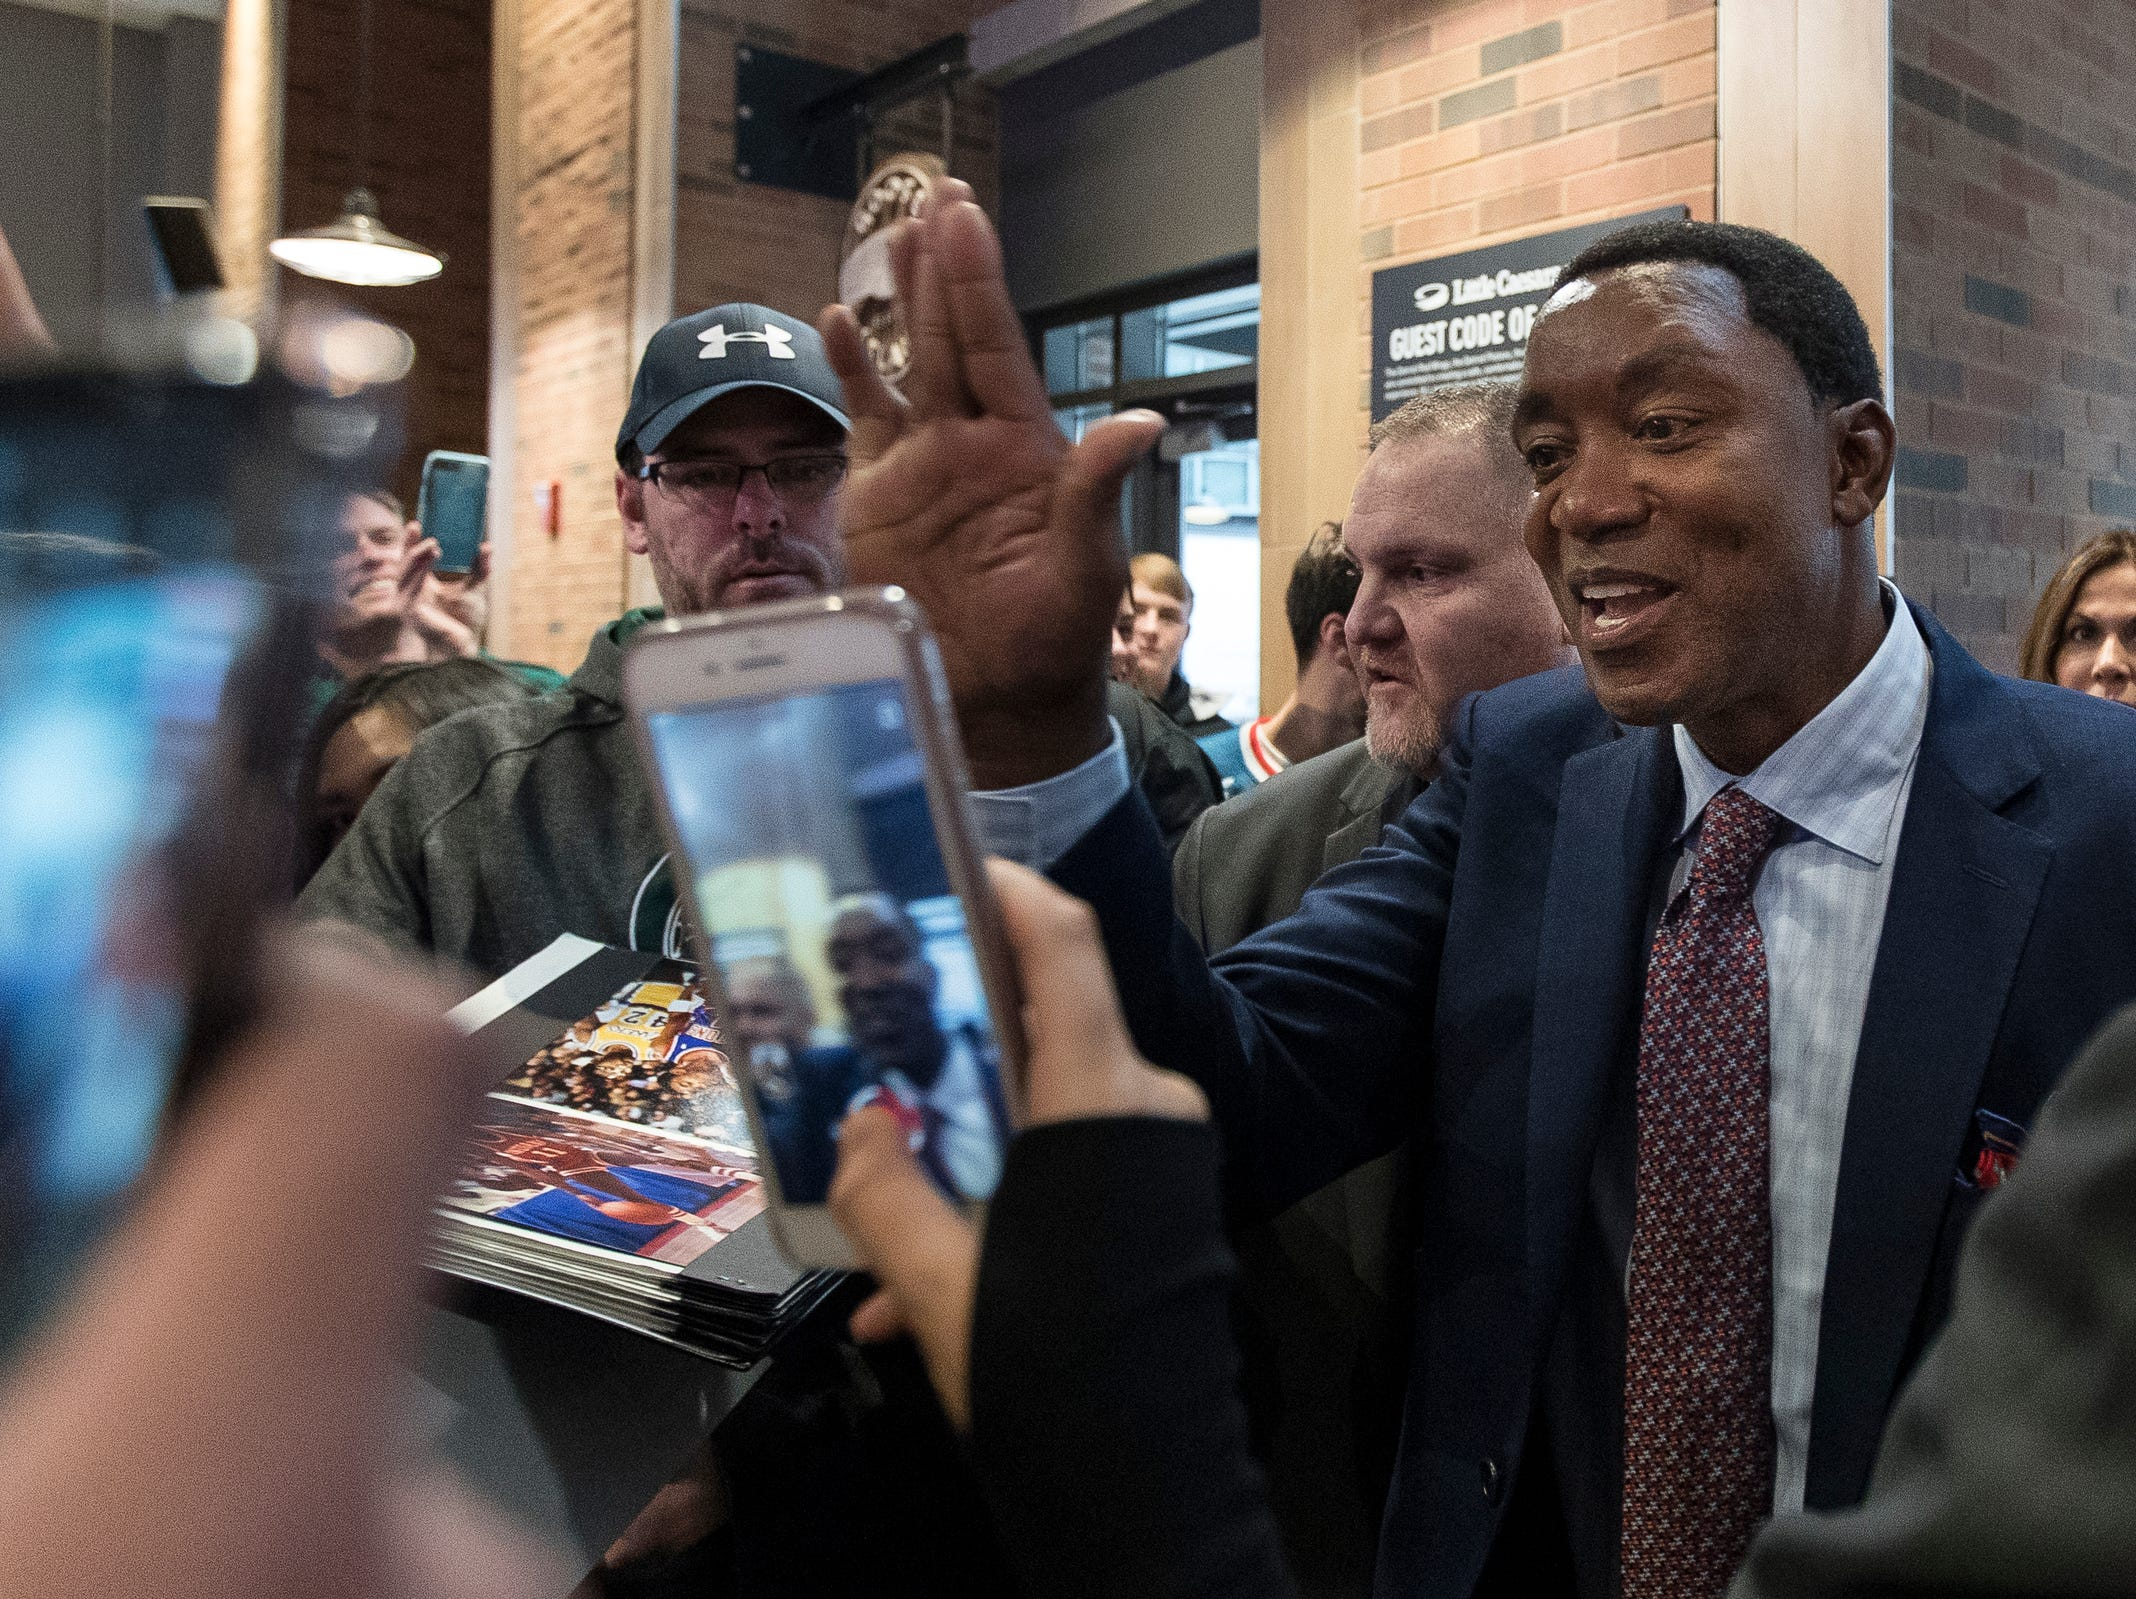 Isiah Thomas high fives fans before the Pistons-Trail Blazers game at the Little Caesars Arena in Detroit, Saturday, March 30, 2019.